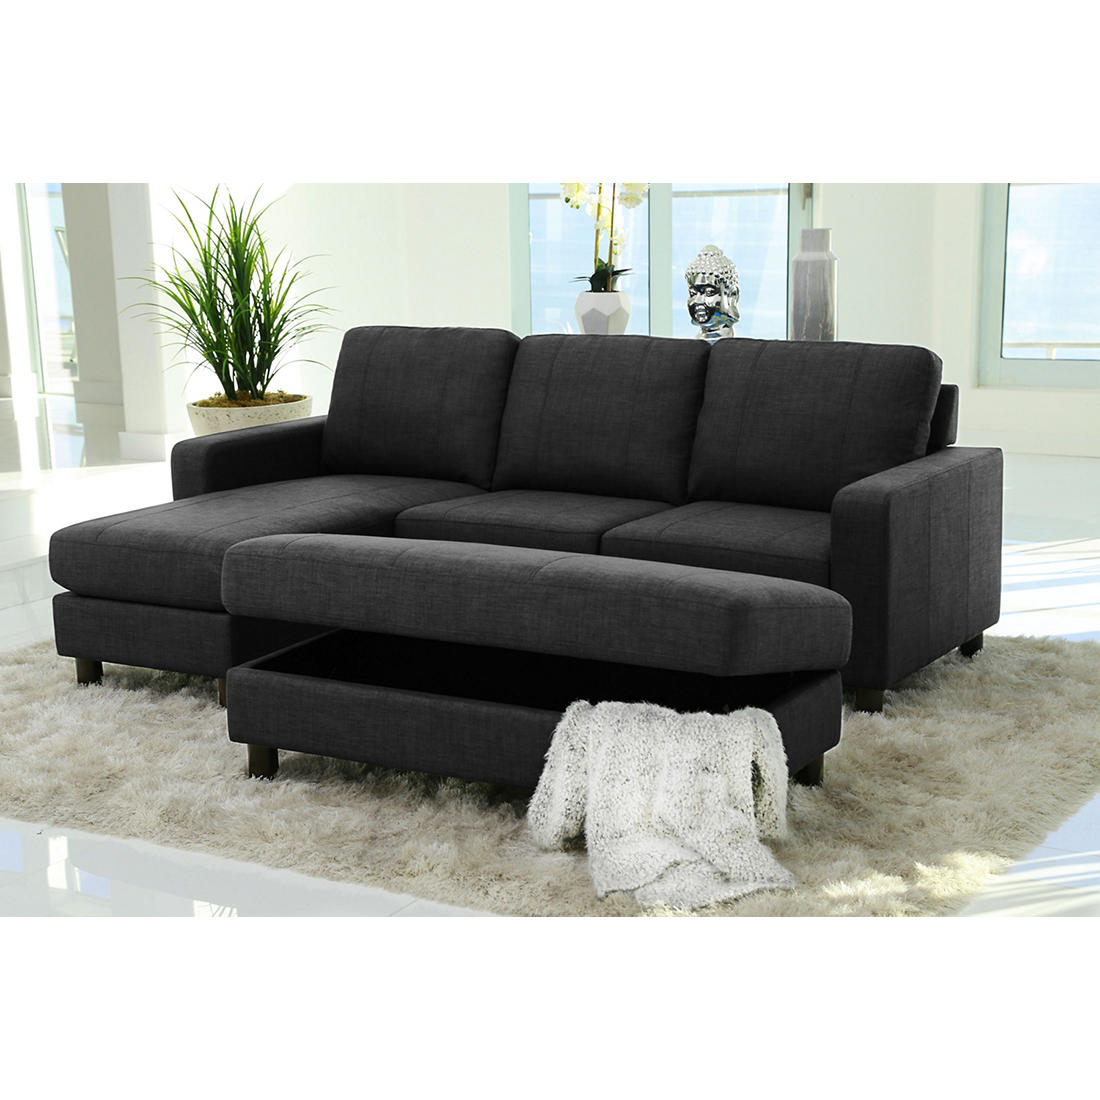 Peachy Abbyson Living Elaina Reversible Sectional And Ottoman Charcoal Gray Caraccident5 Cool Chair Designs And Ideas Caraccident5Info